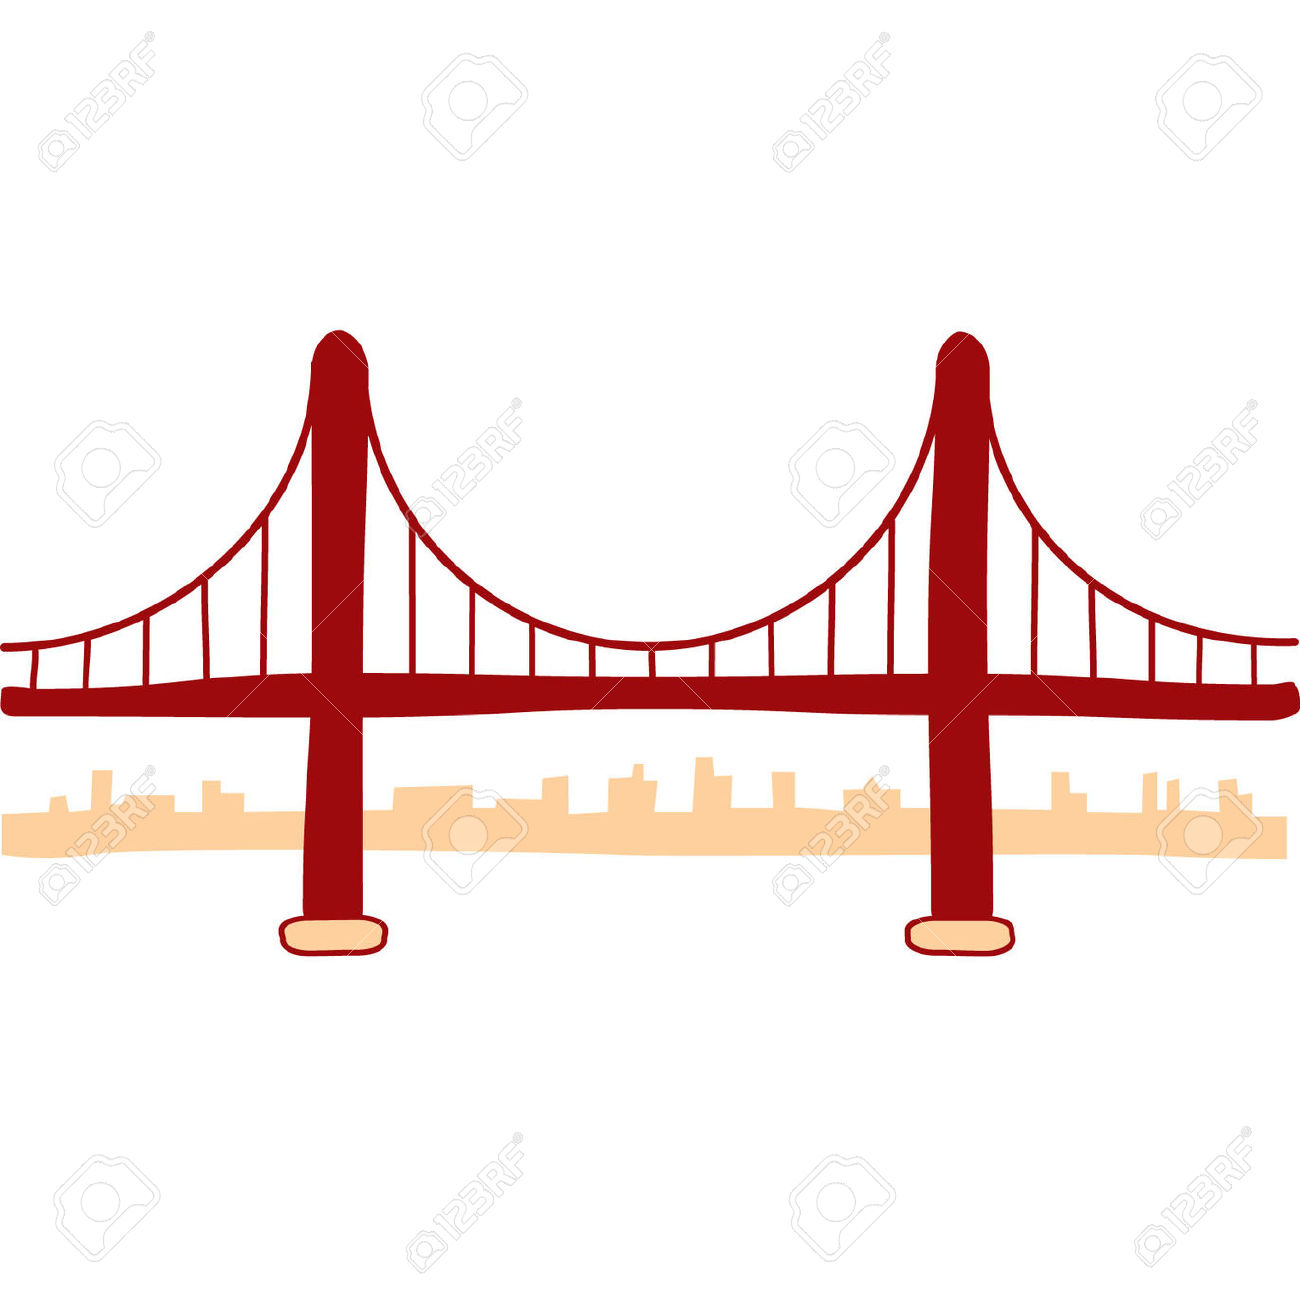 Golden Gate Bridge Clipart - .